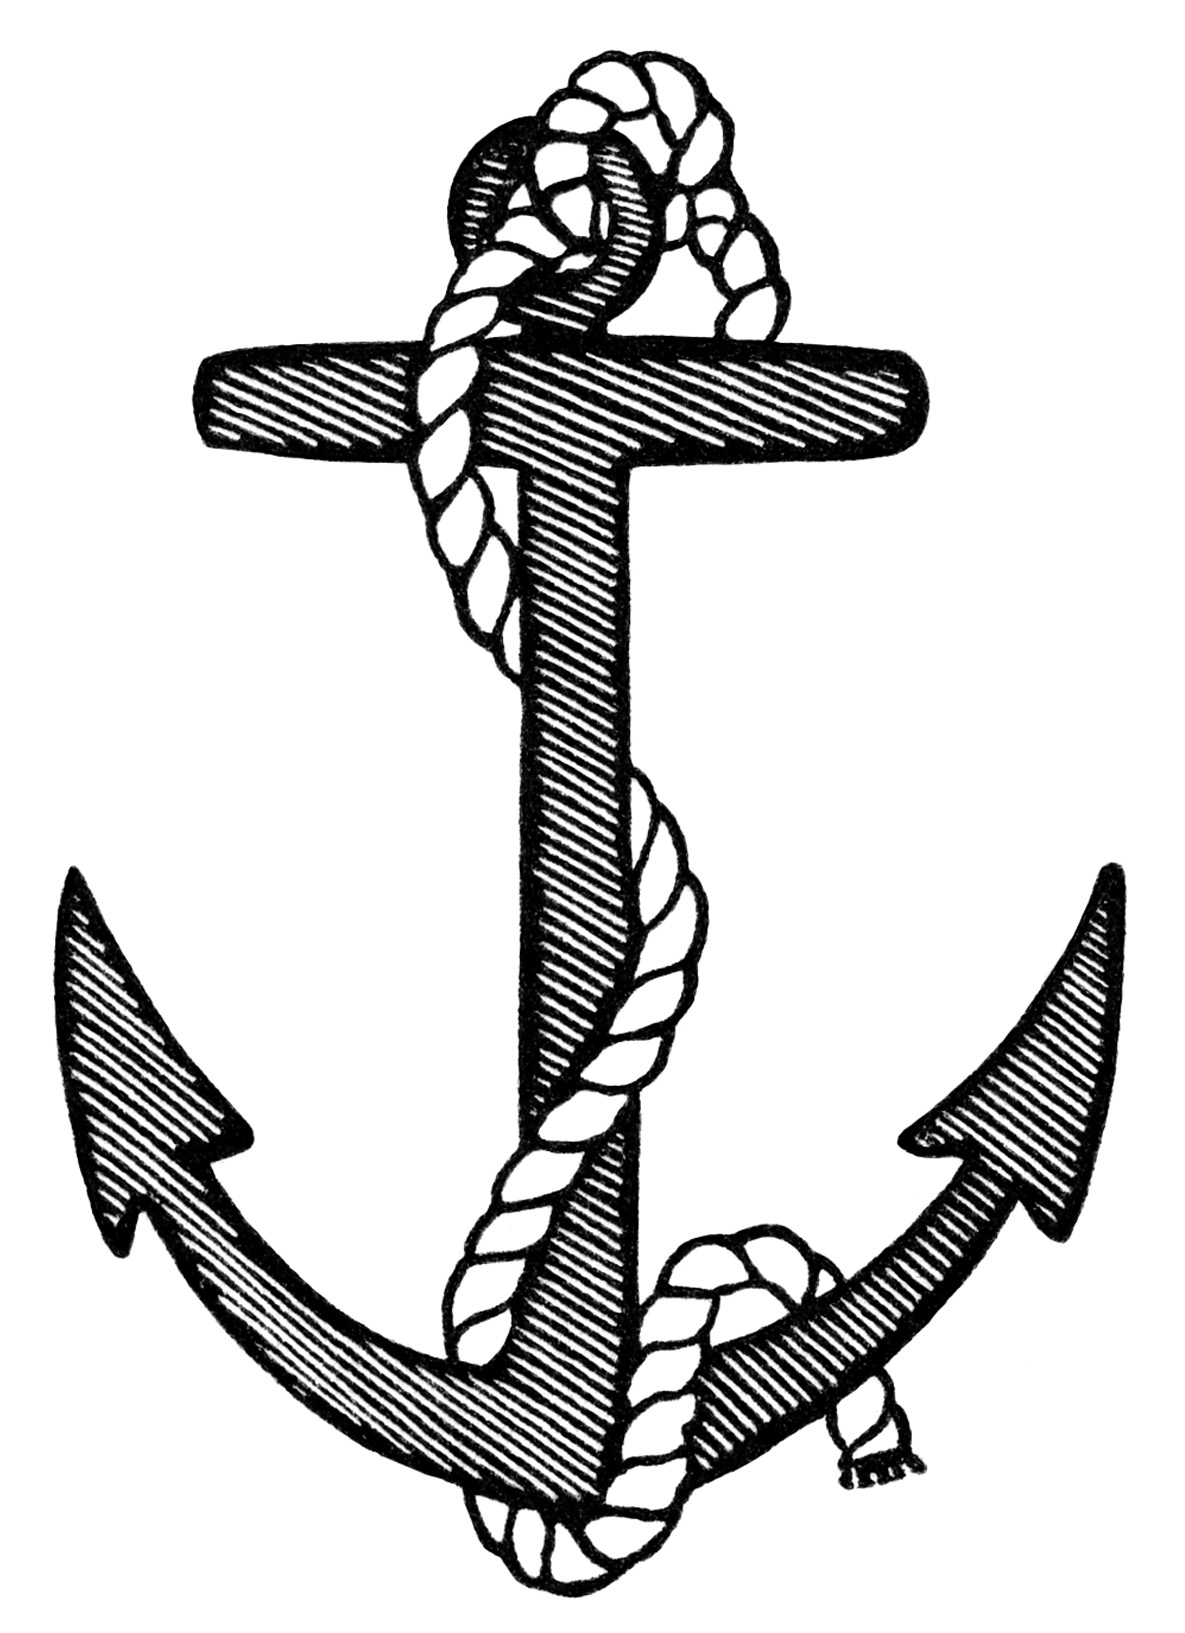 ... , anchor clip art, black and white clipart free, vintage anchor image Vintage Anchor Drawing